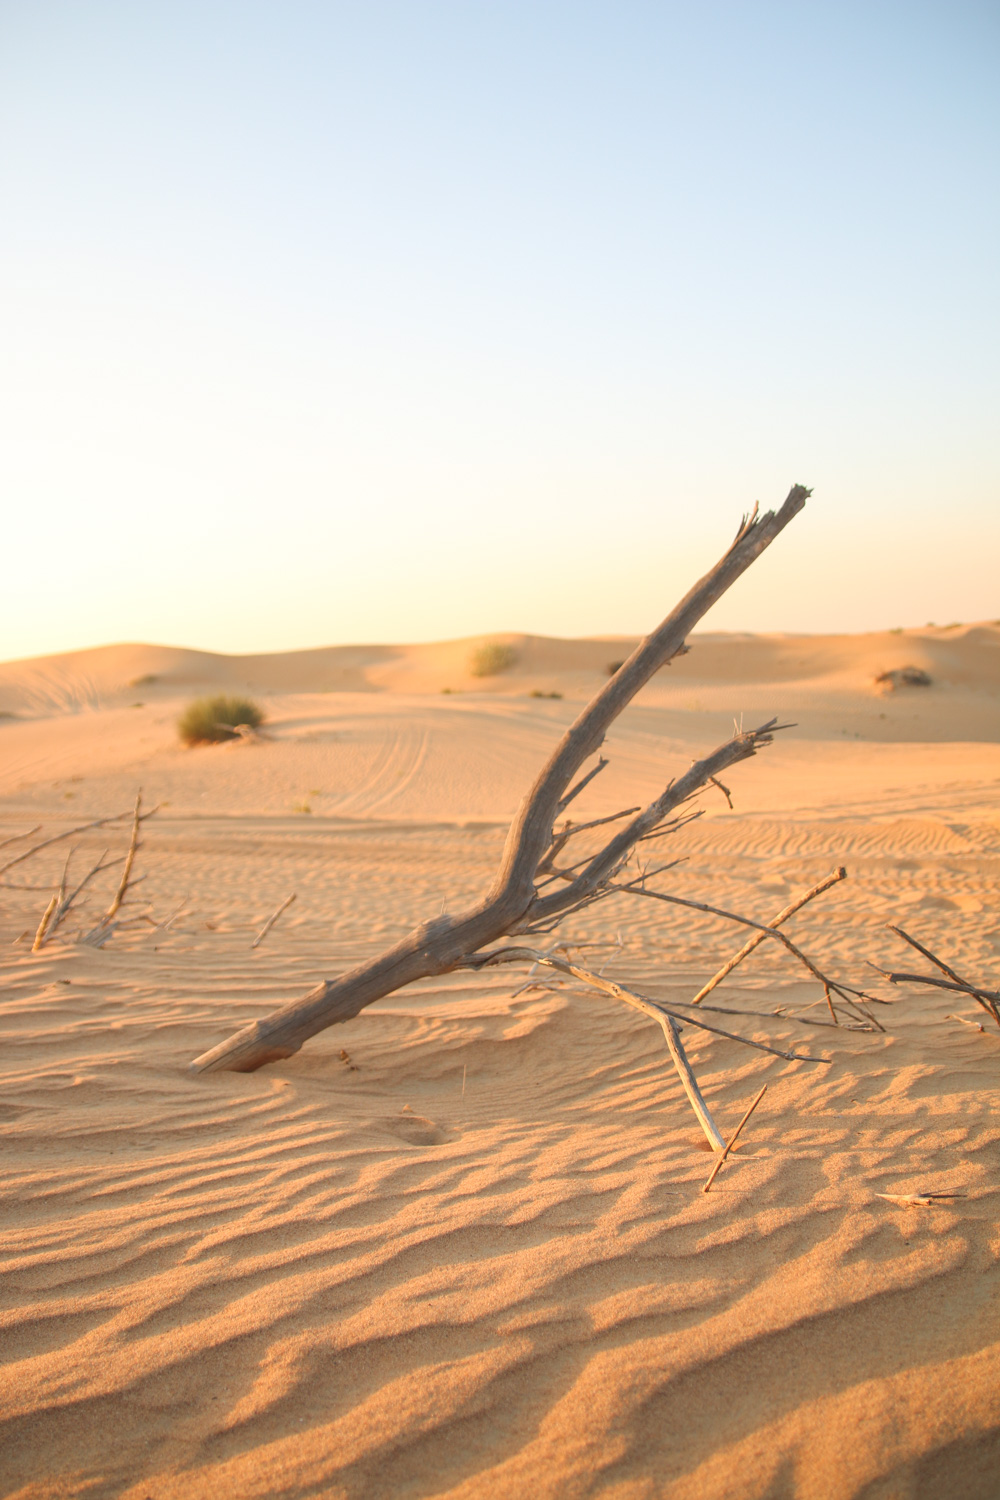 Sun Setting over the sand dunes in the Dubai Desert